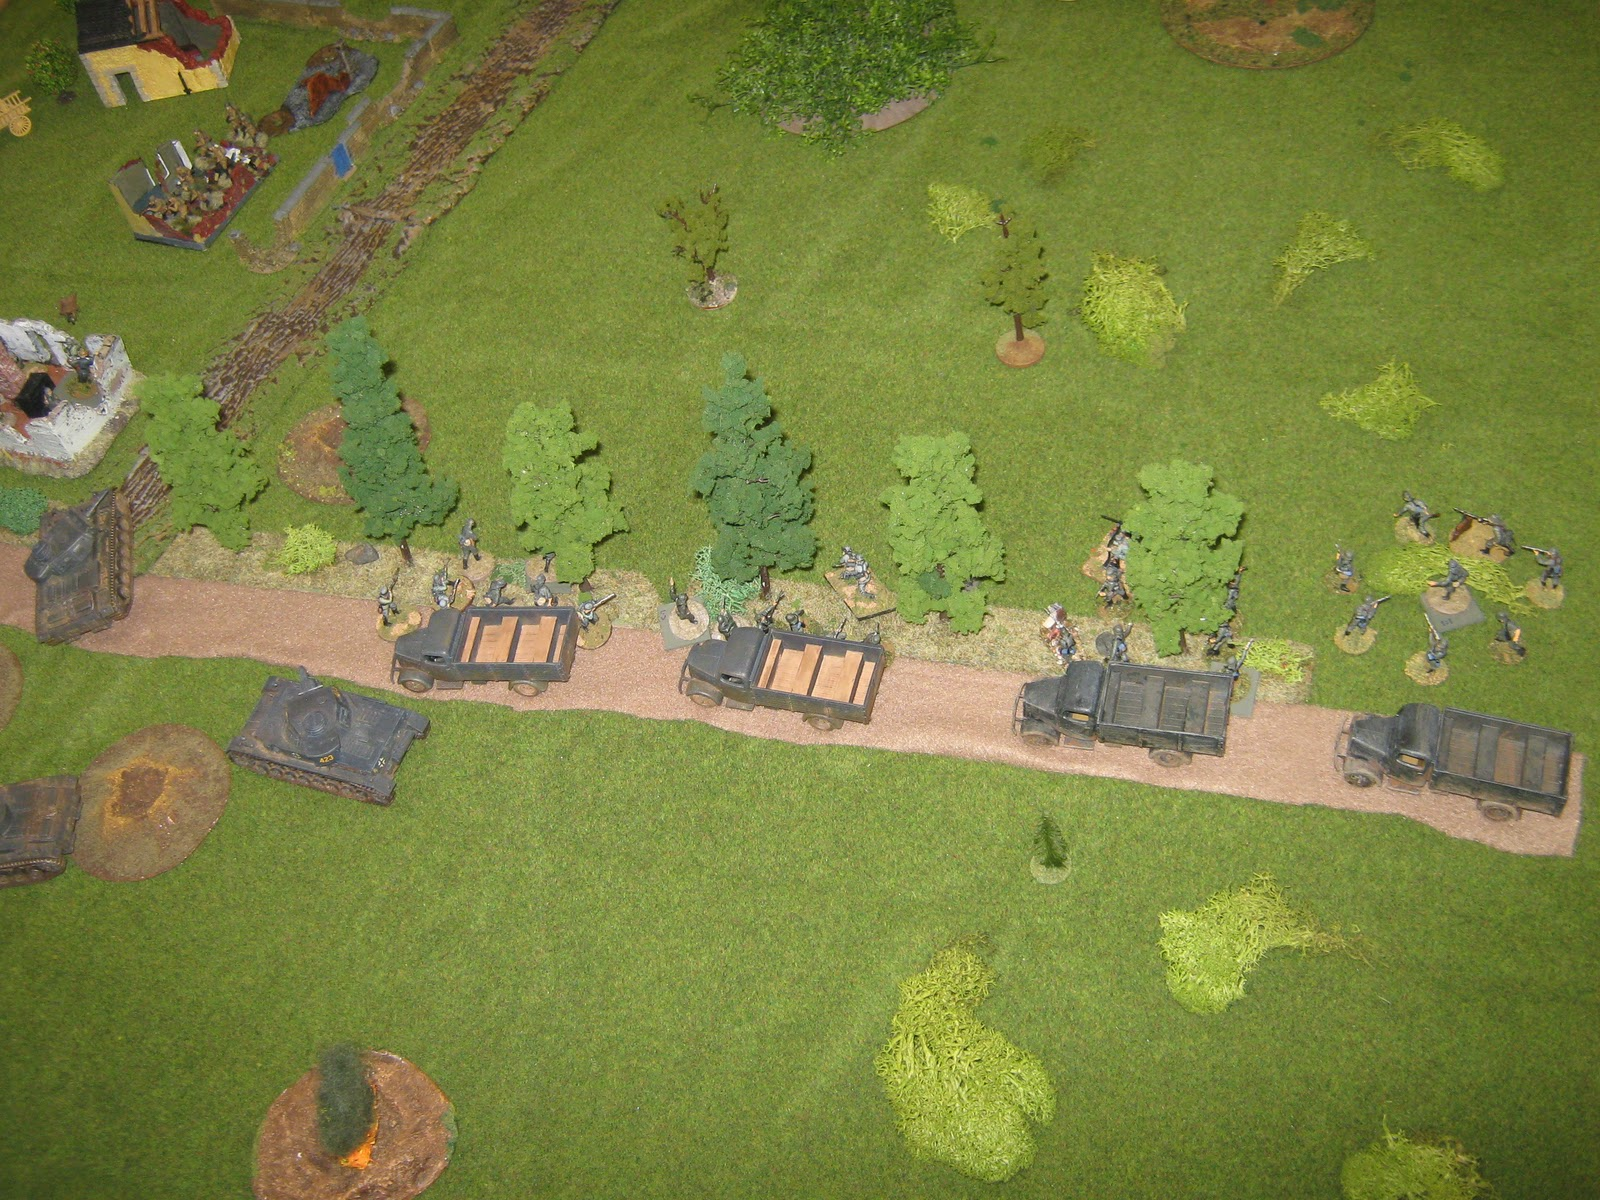 More reinforcements, this time infantry in trucks. Coming in was no problem, but backing the trucks off was worse. A major traffic jam, that proved to be trouble when a much needed AT-gun was needed later on.